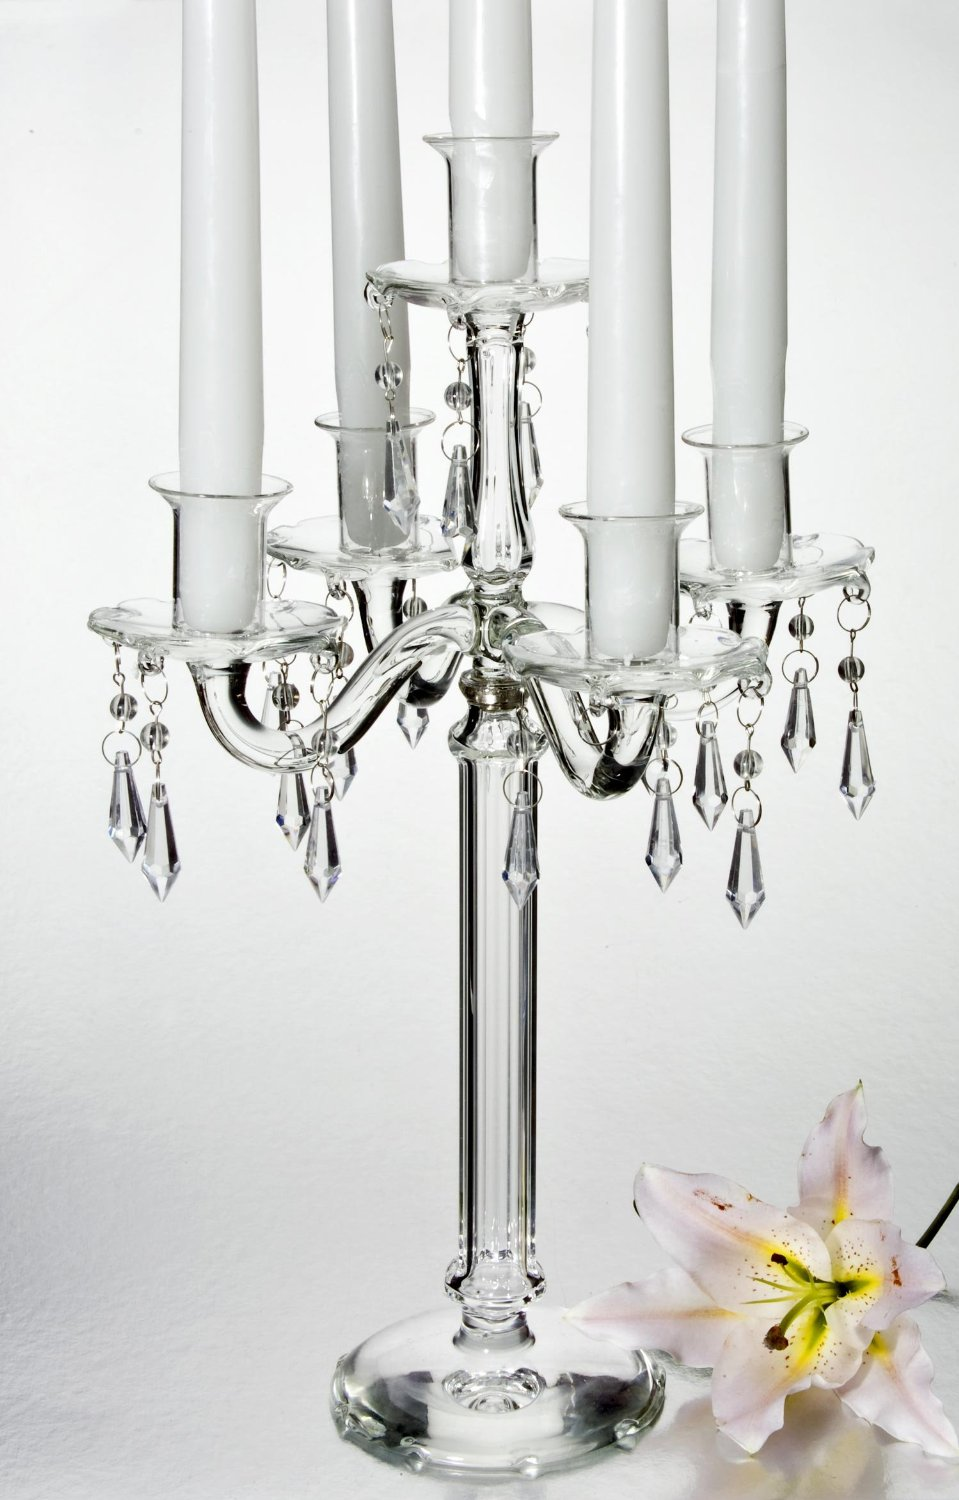 5 LIGHT CRYSTAL CANDELABRA W DROPS - crystal candelabra